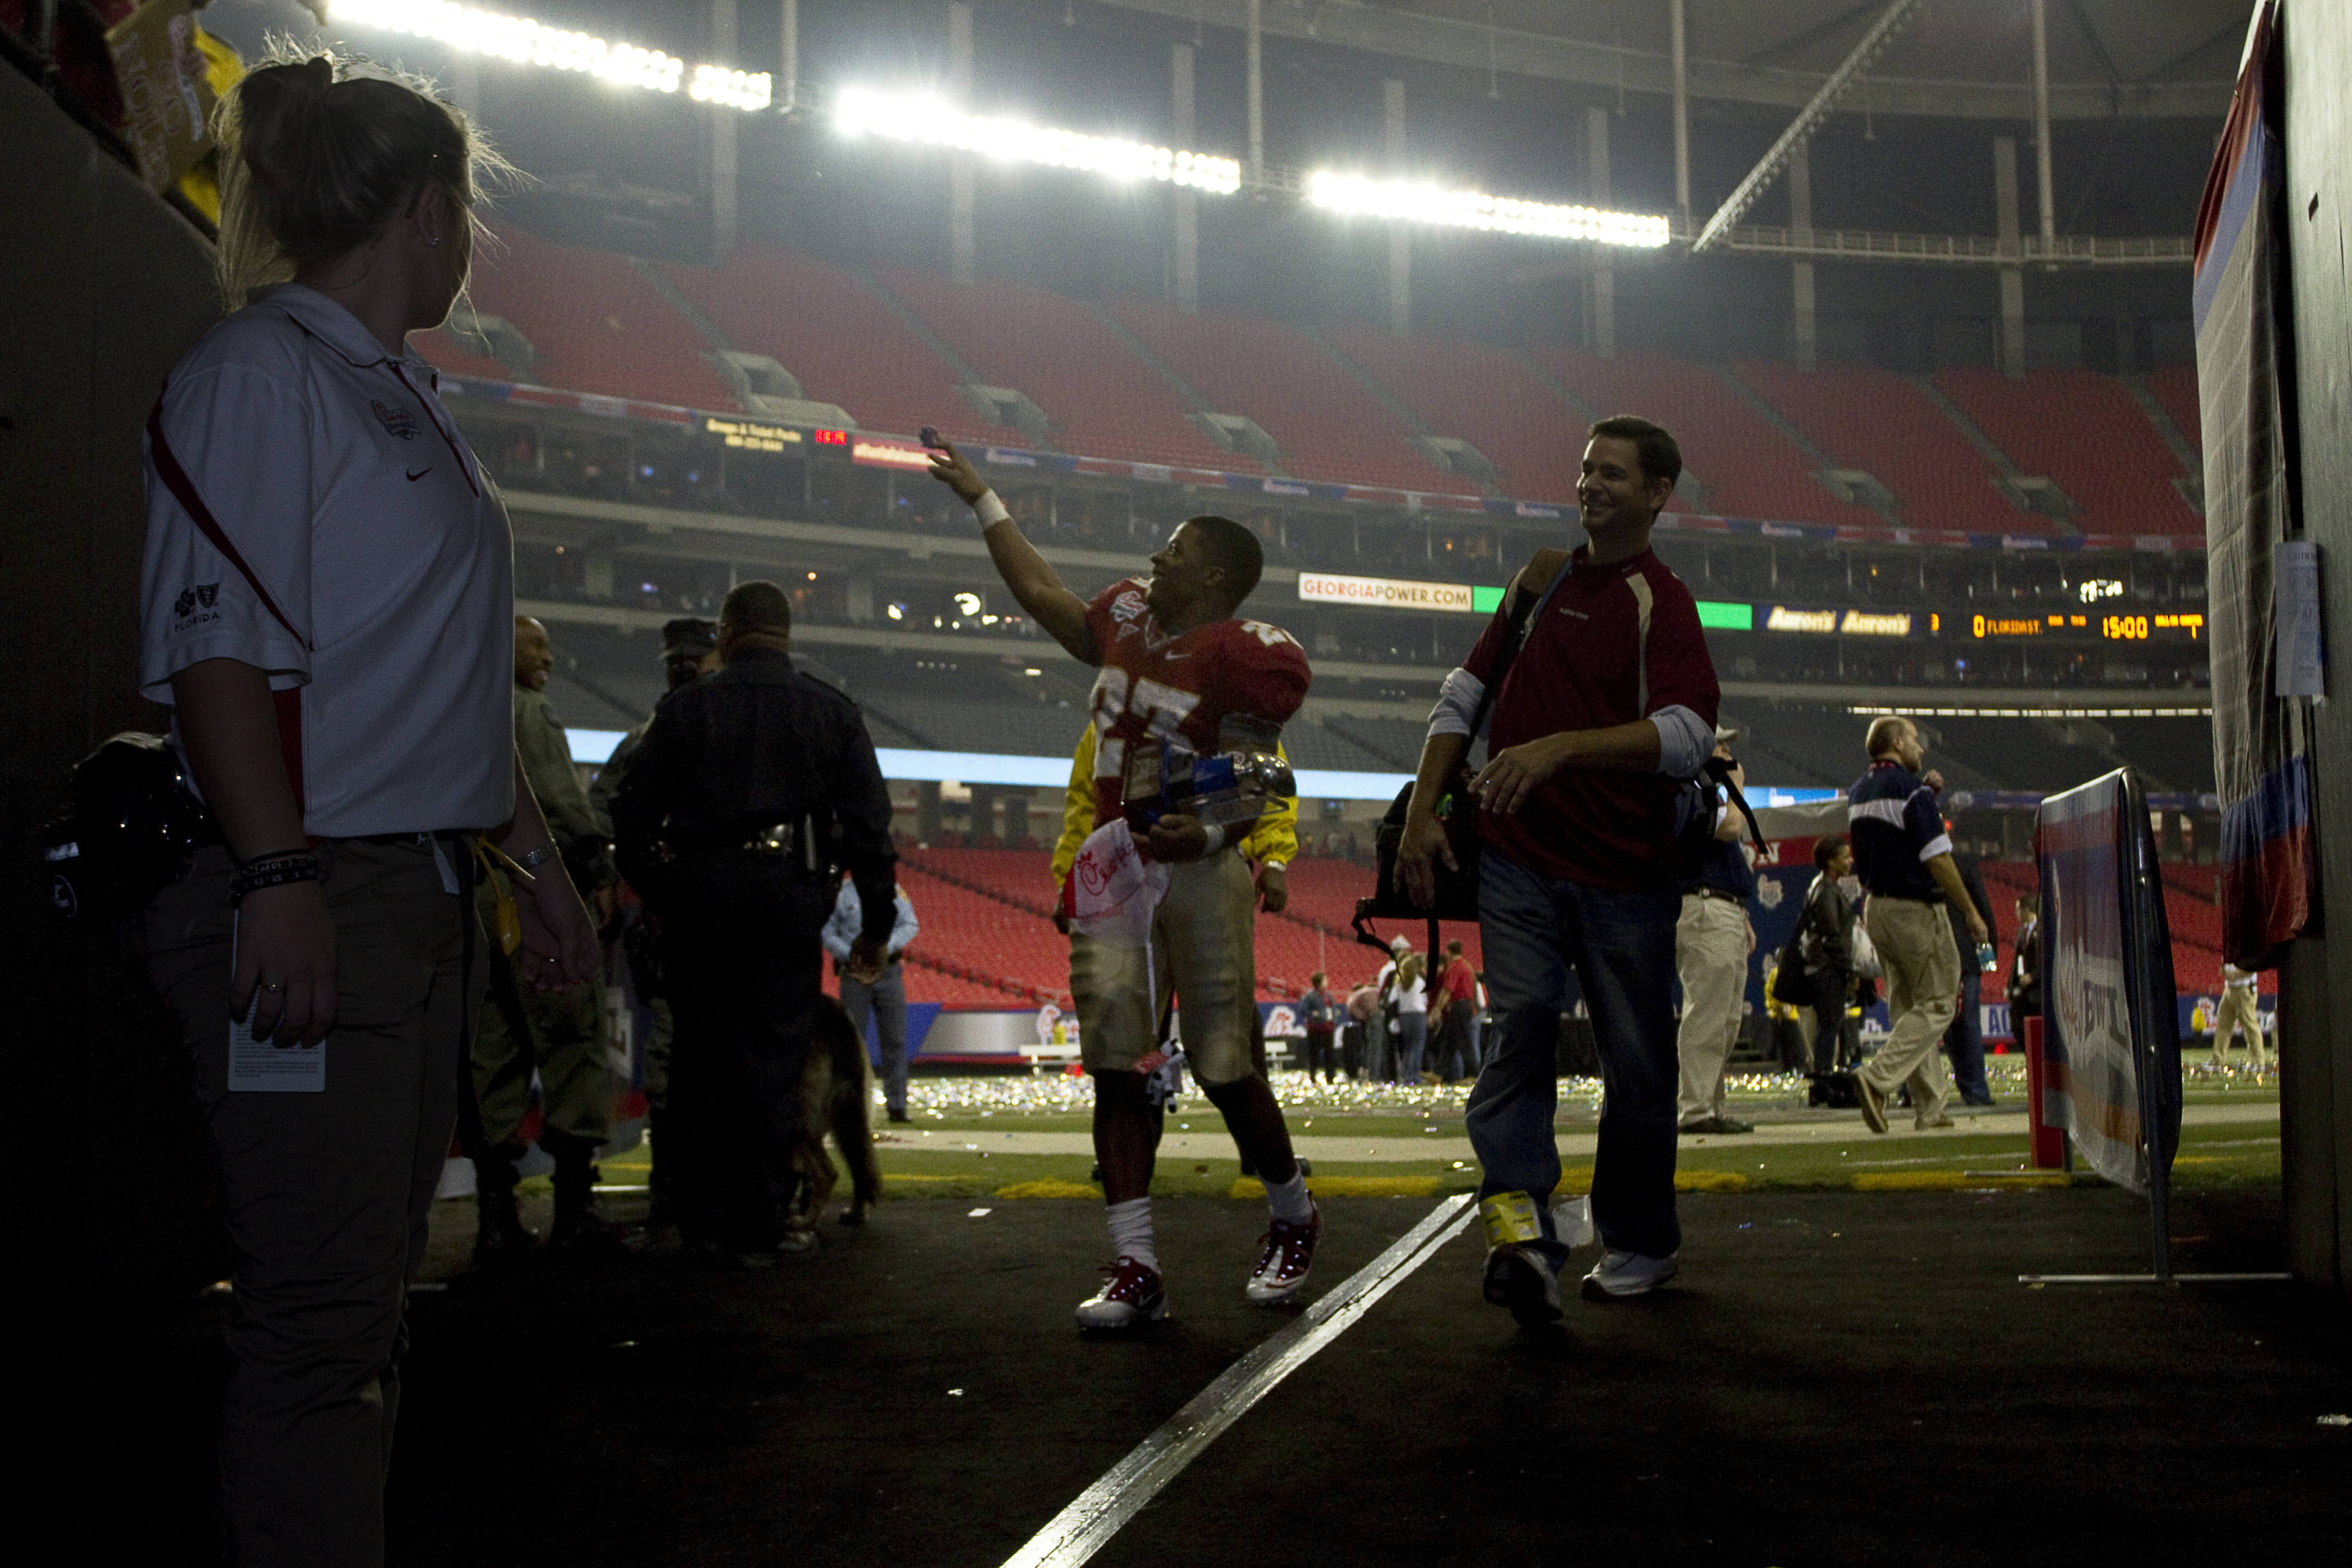 Chris Thompson (23) waves to cheering fans as he leaves the field after the Chick-fil-a Bowl